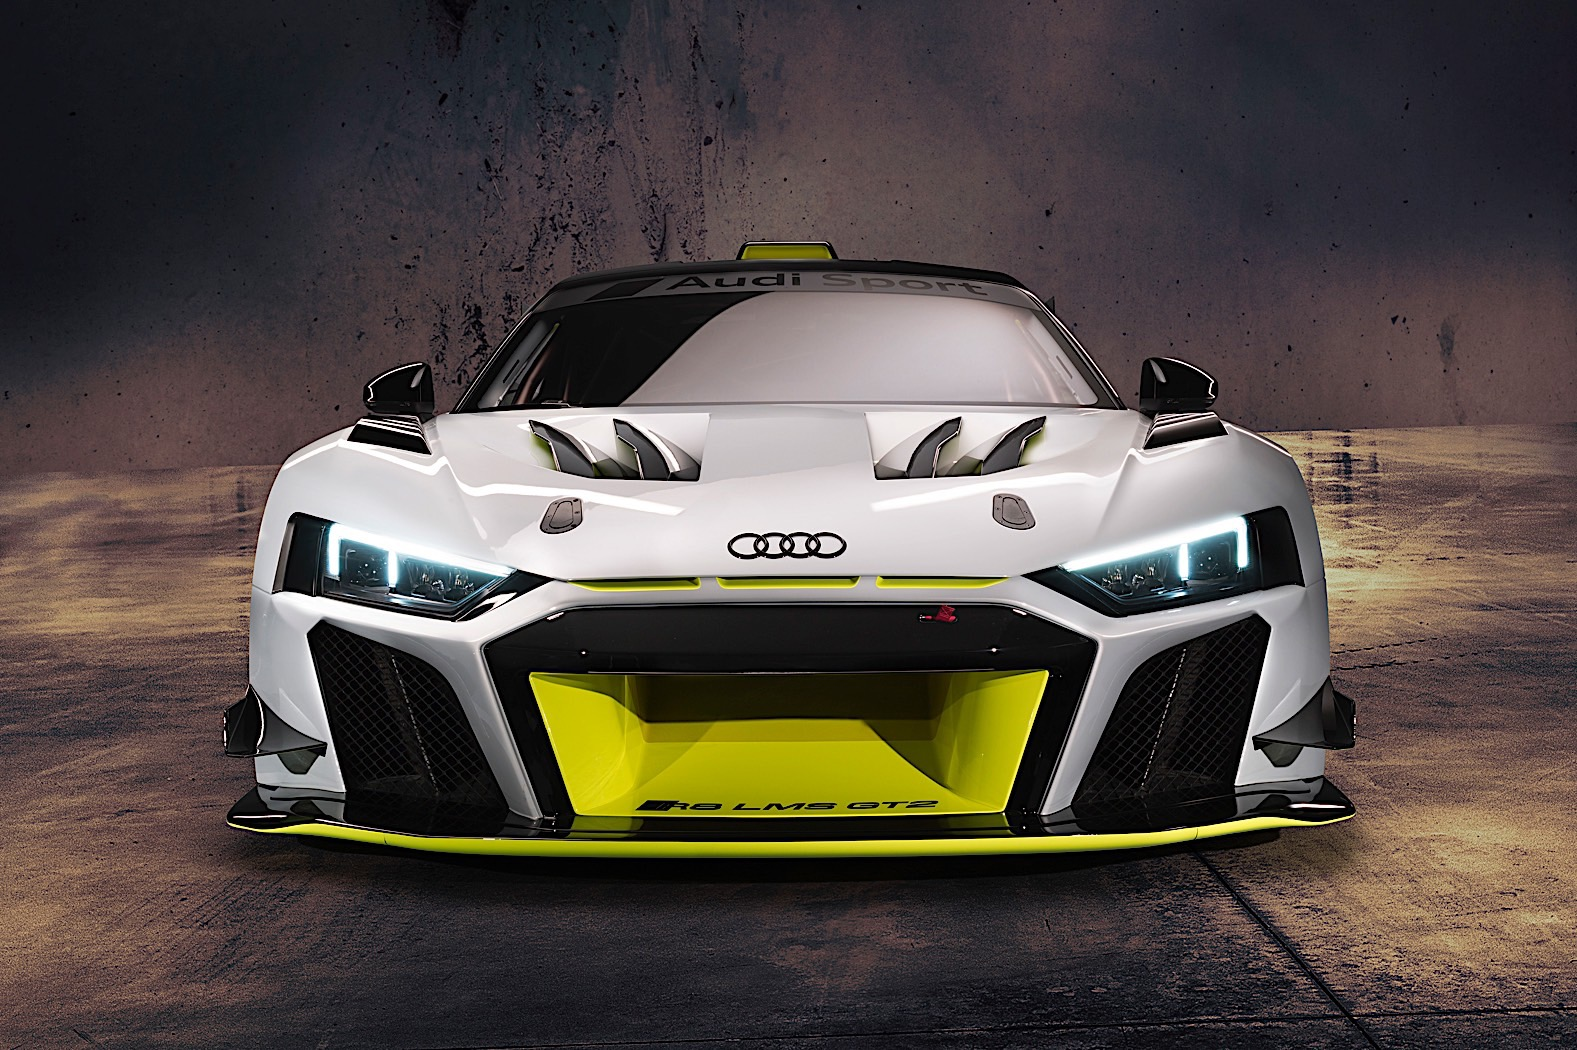 2020 Audi R8 Lms Gt2 Unveiled With 640 Hp And 338k Price Tag